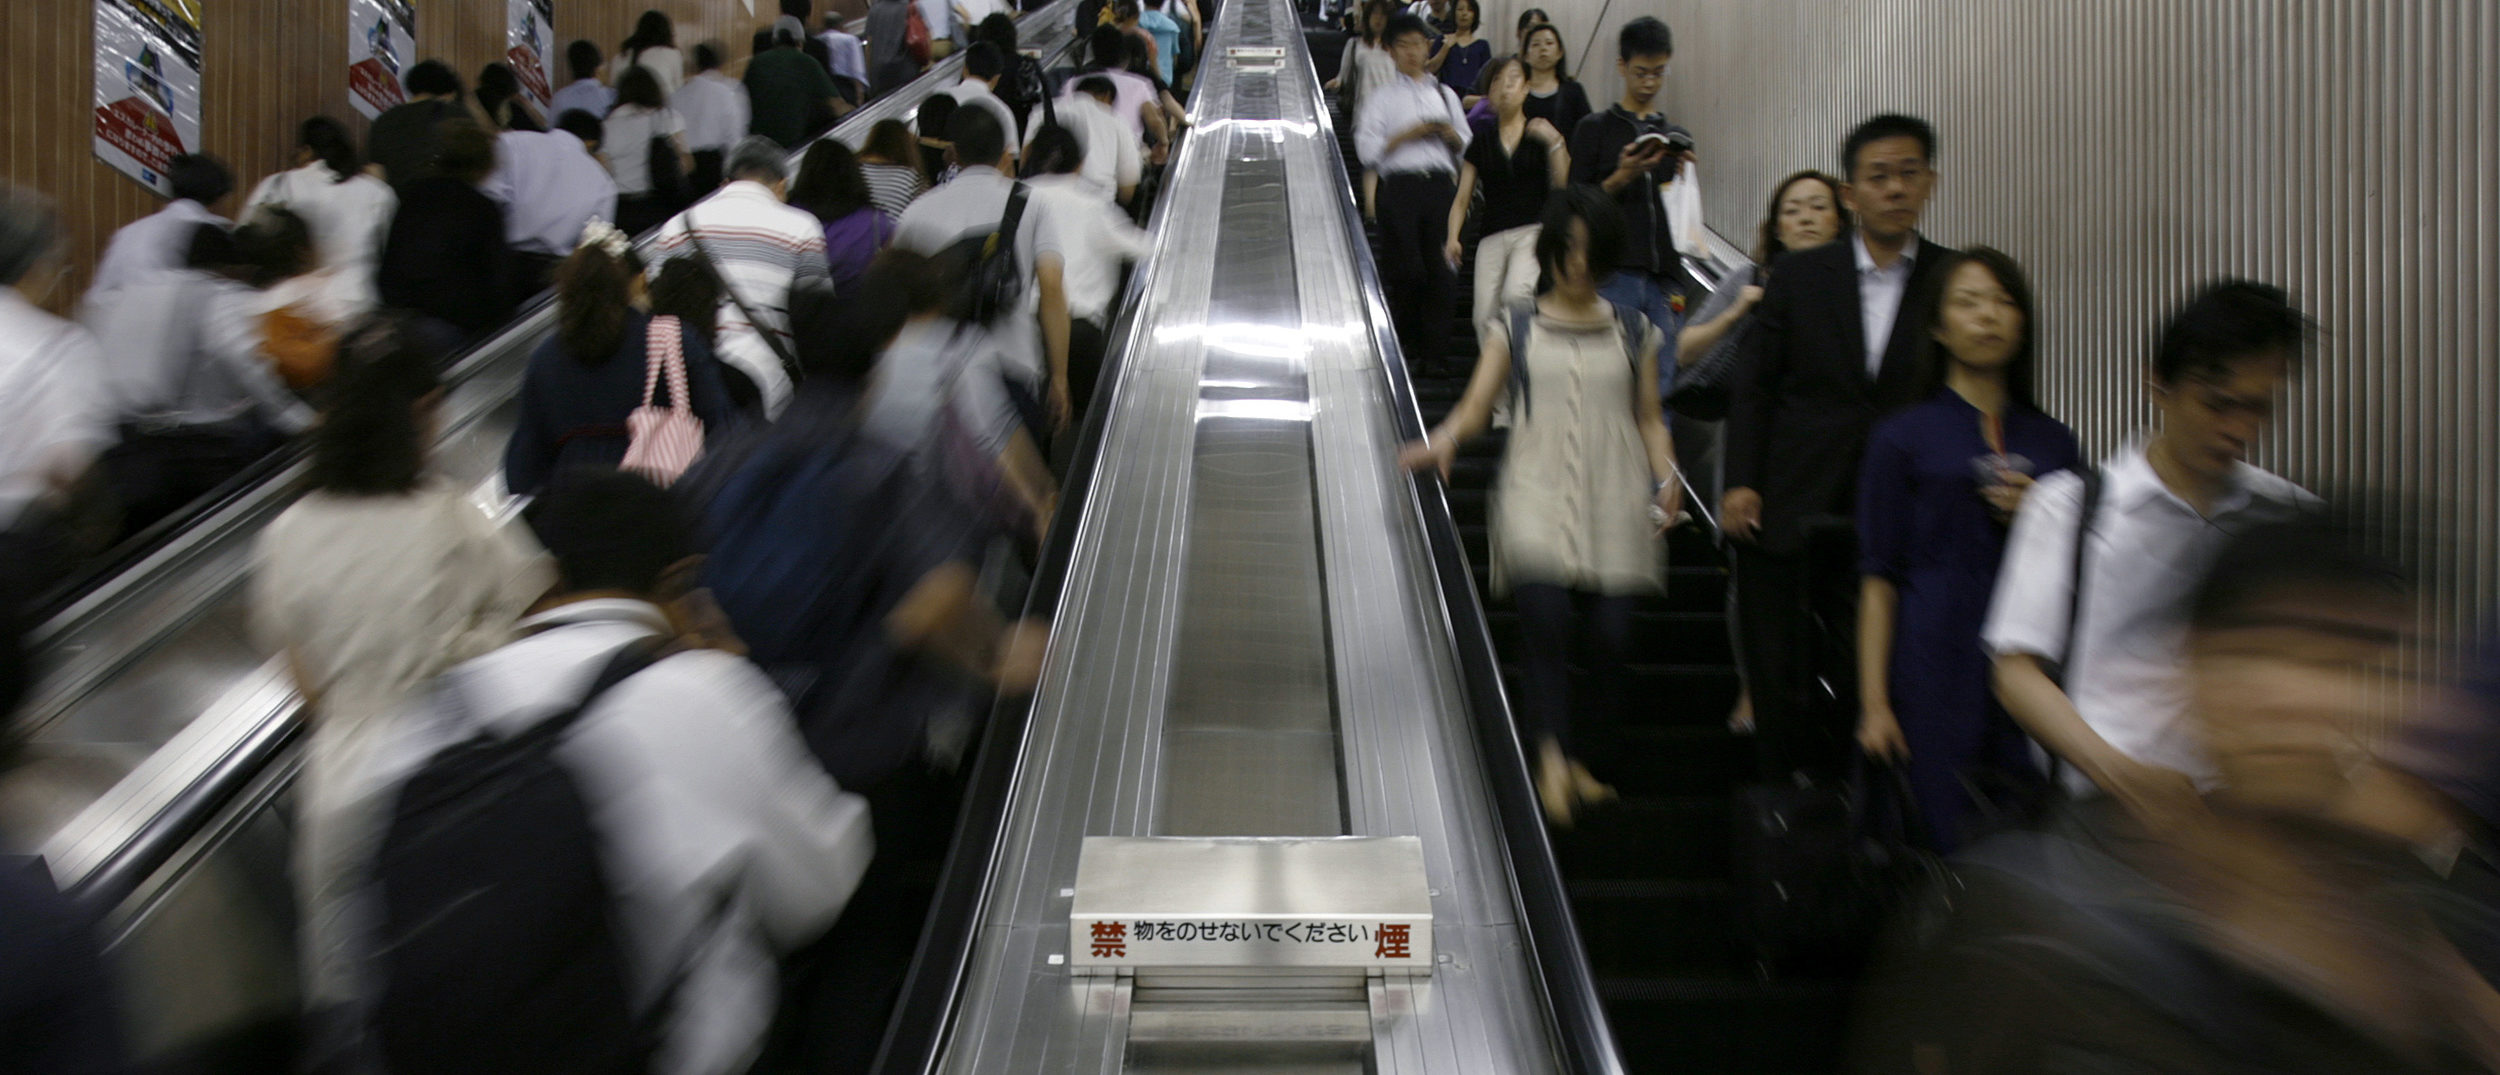 Commuters ride escalators at a subway station in Tokyo August 12, 2009.   REUTERS/Stringer (JAPAN BUSINESS EMPLOYMENT) - RTR27B7S